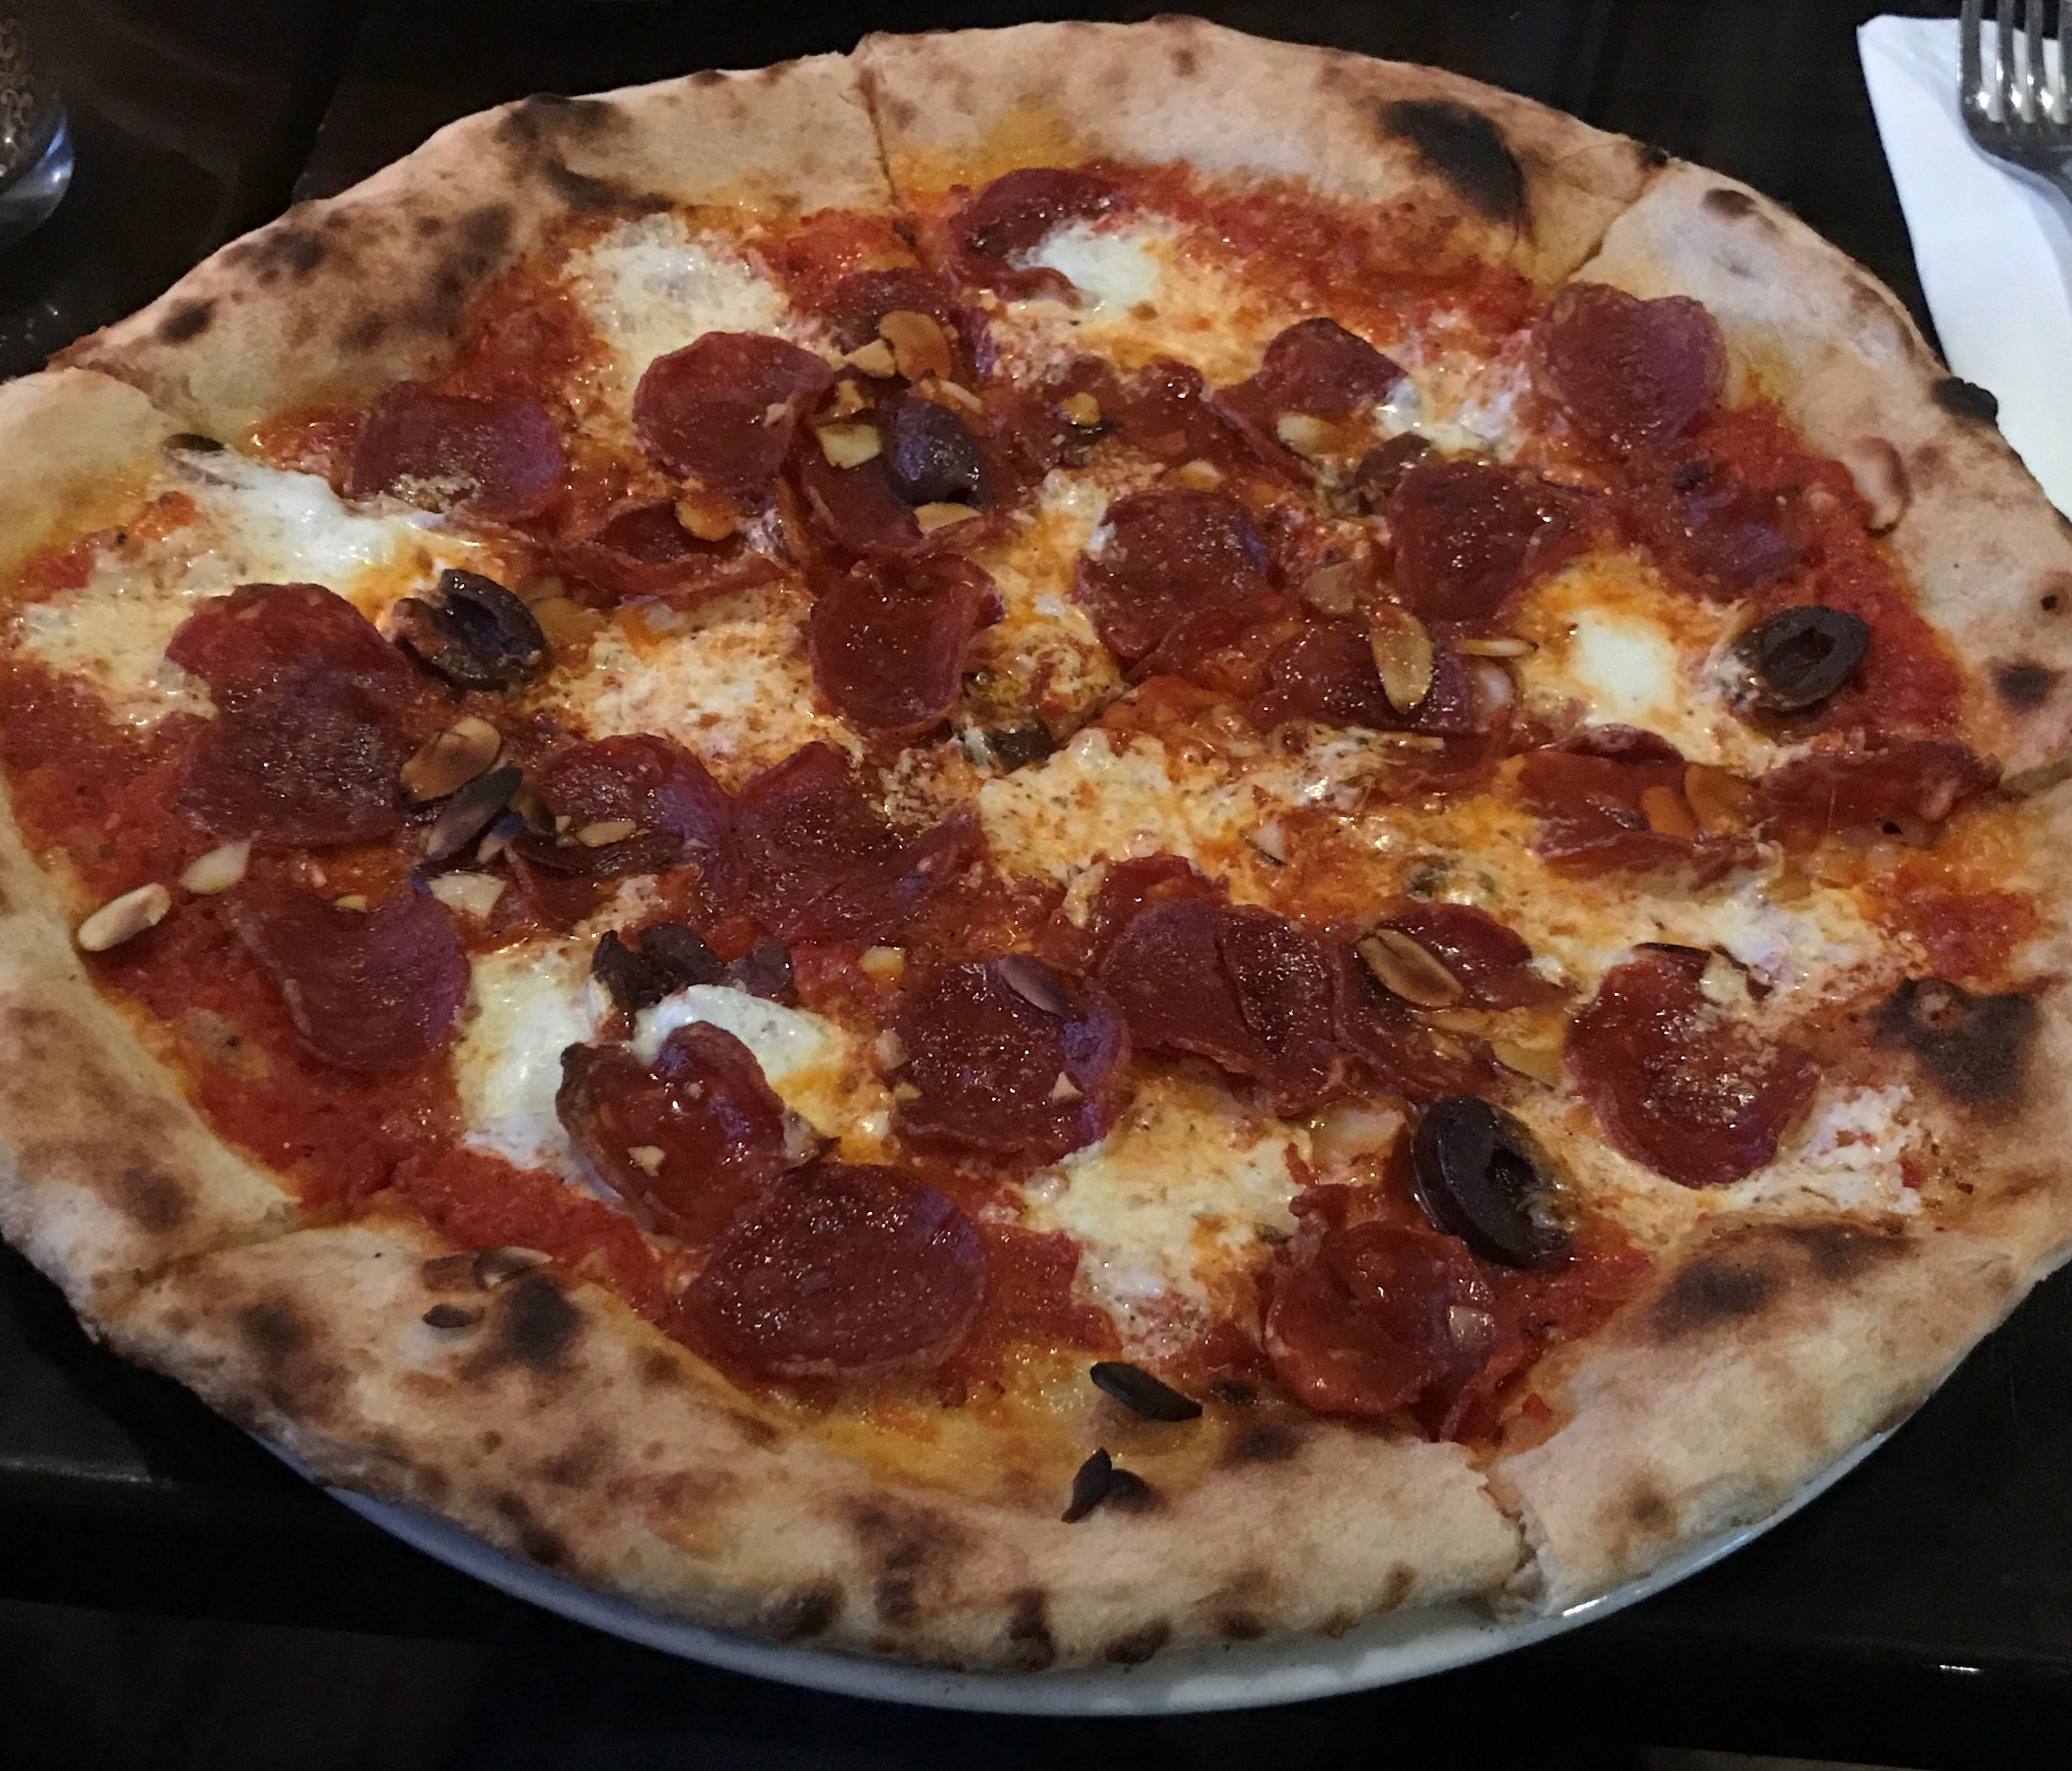 The signature pizza is the Spain, with fresh mozzarella, chorizo sausage, Spanish almonds, olives and a mild harissa pepper sauce.